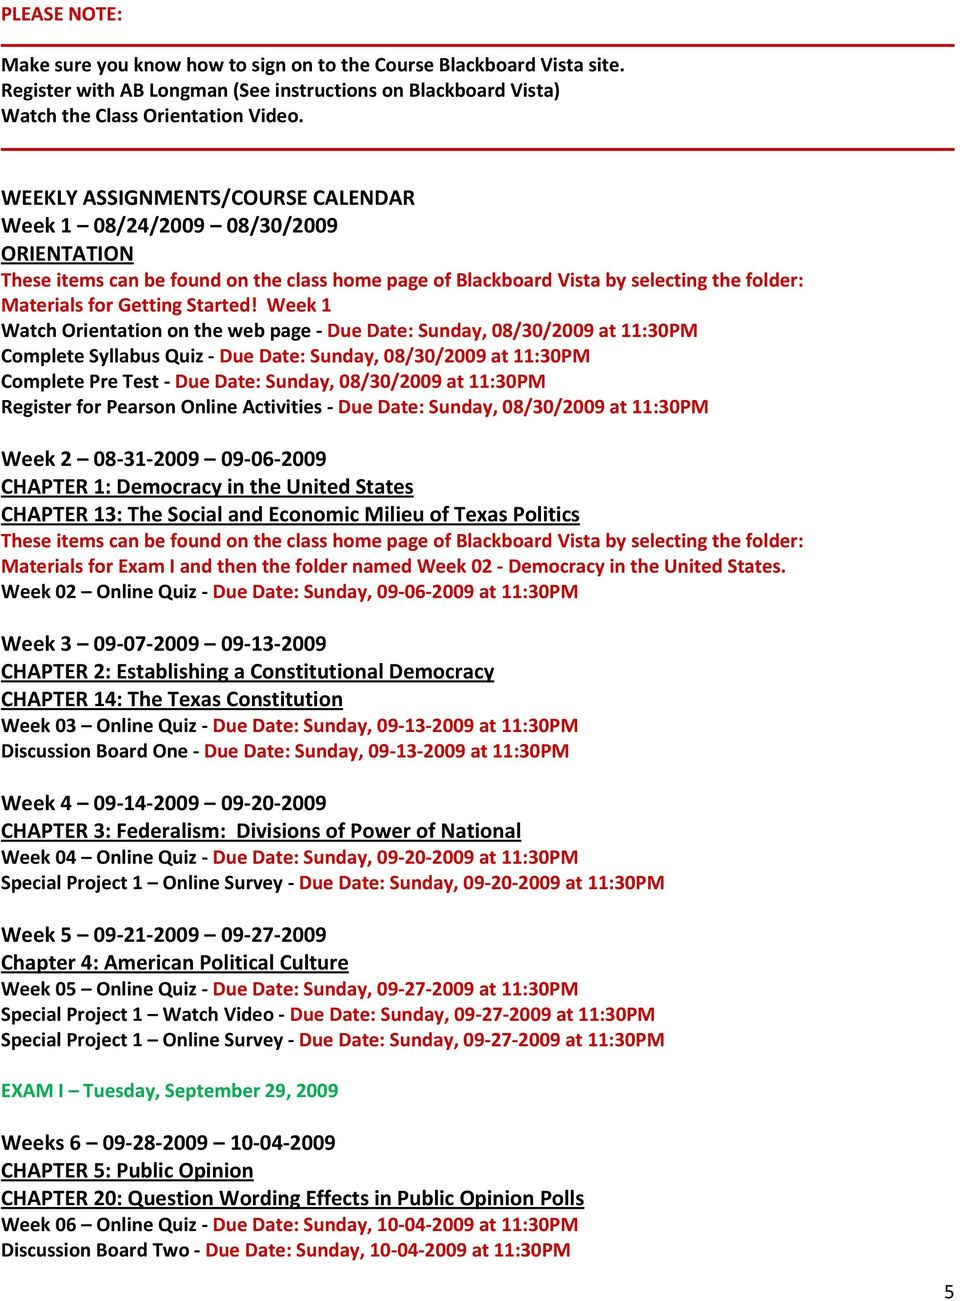 Week 1 Watch Orientation on the web page Due Date: Sunday, 08/30/2009 at 11:30PM Complete Syllabus Quiz Due Date: Sunday, 08/30/2009 at 11:30PM Complete Pre Test Due Date: Sunday, 08/30/2009 at